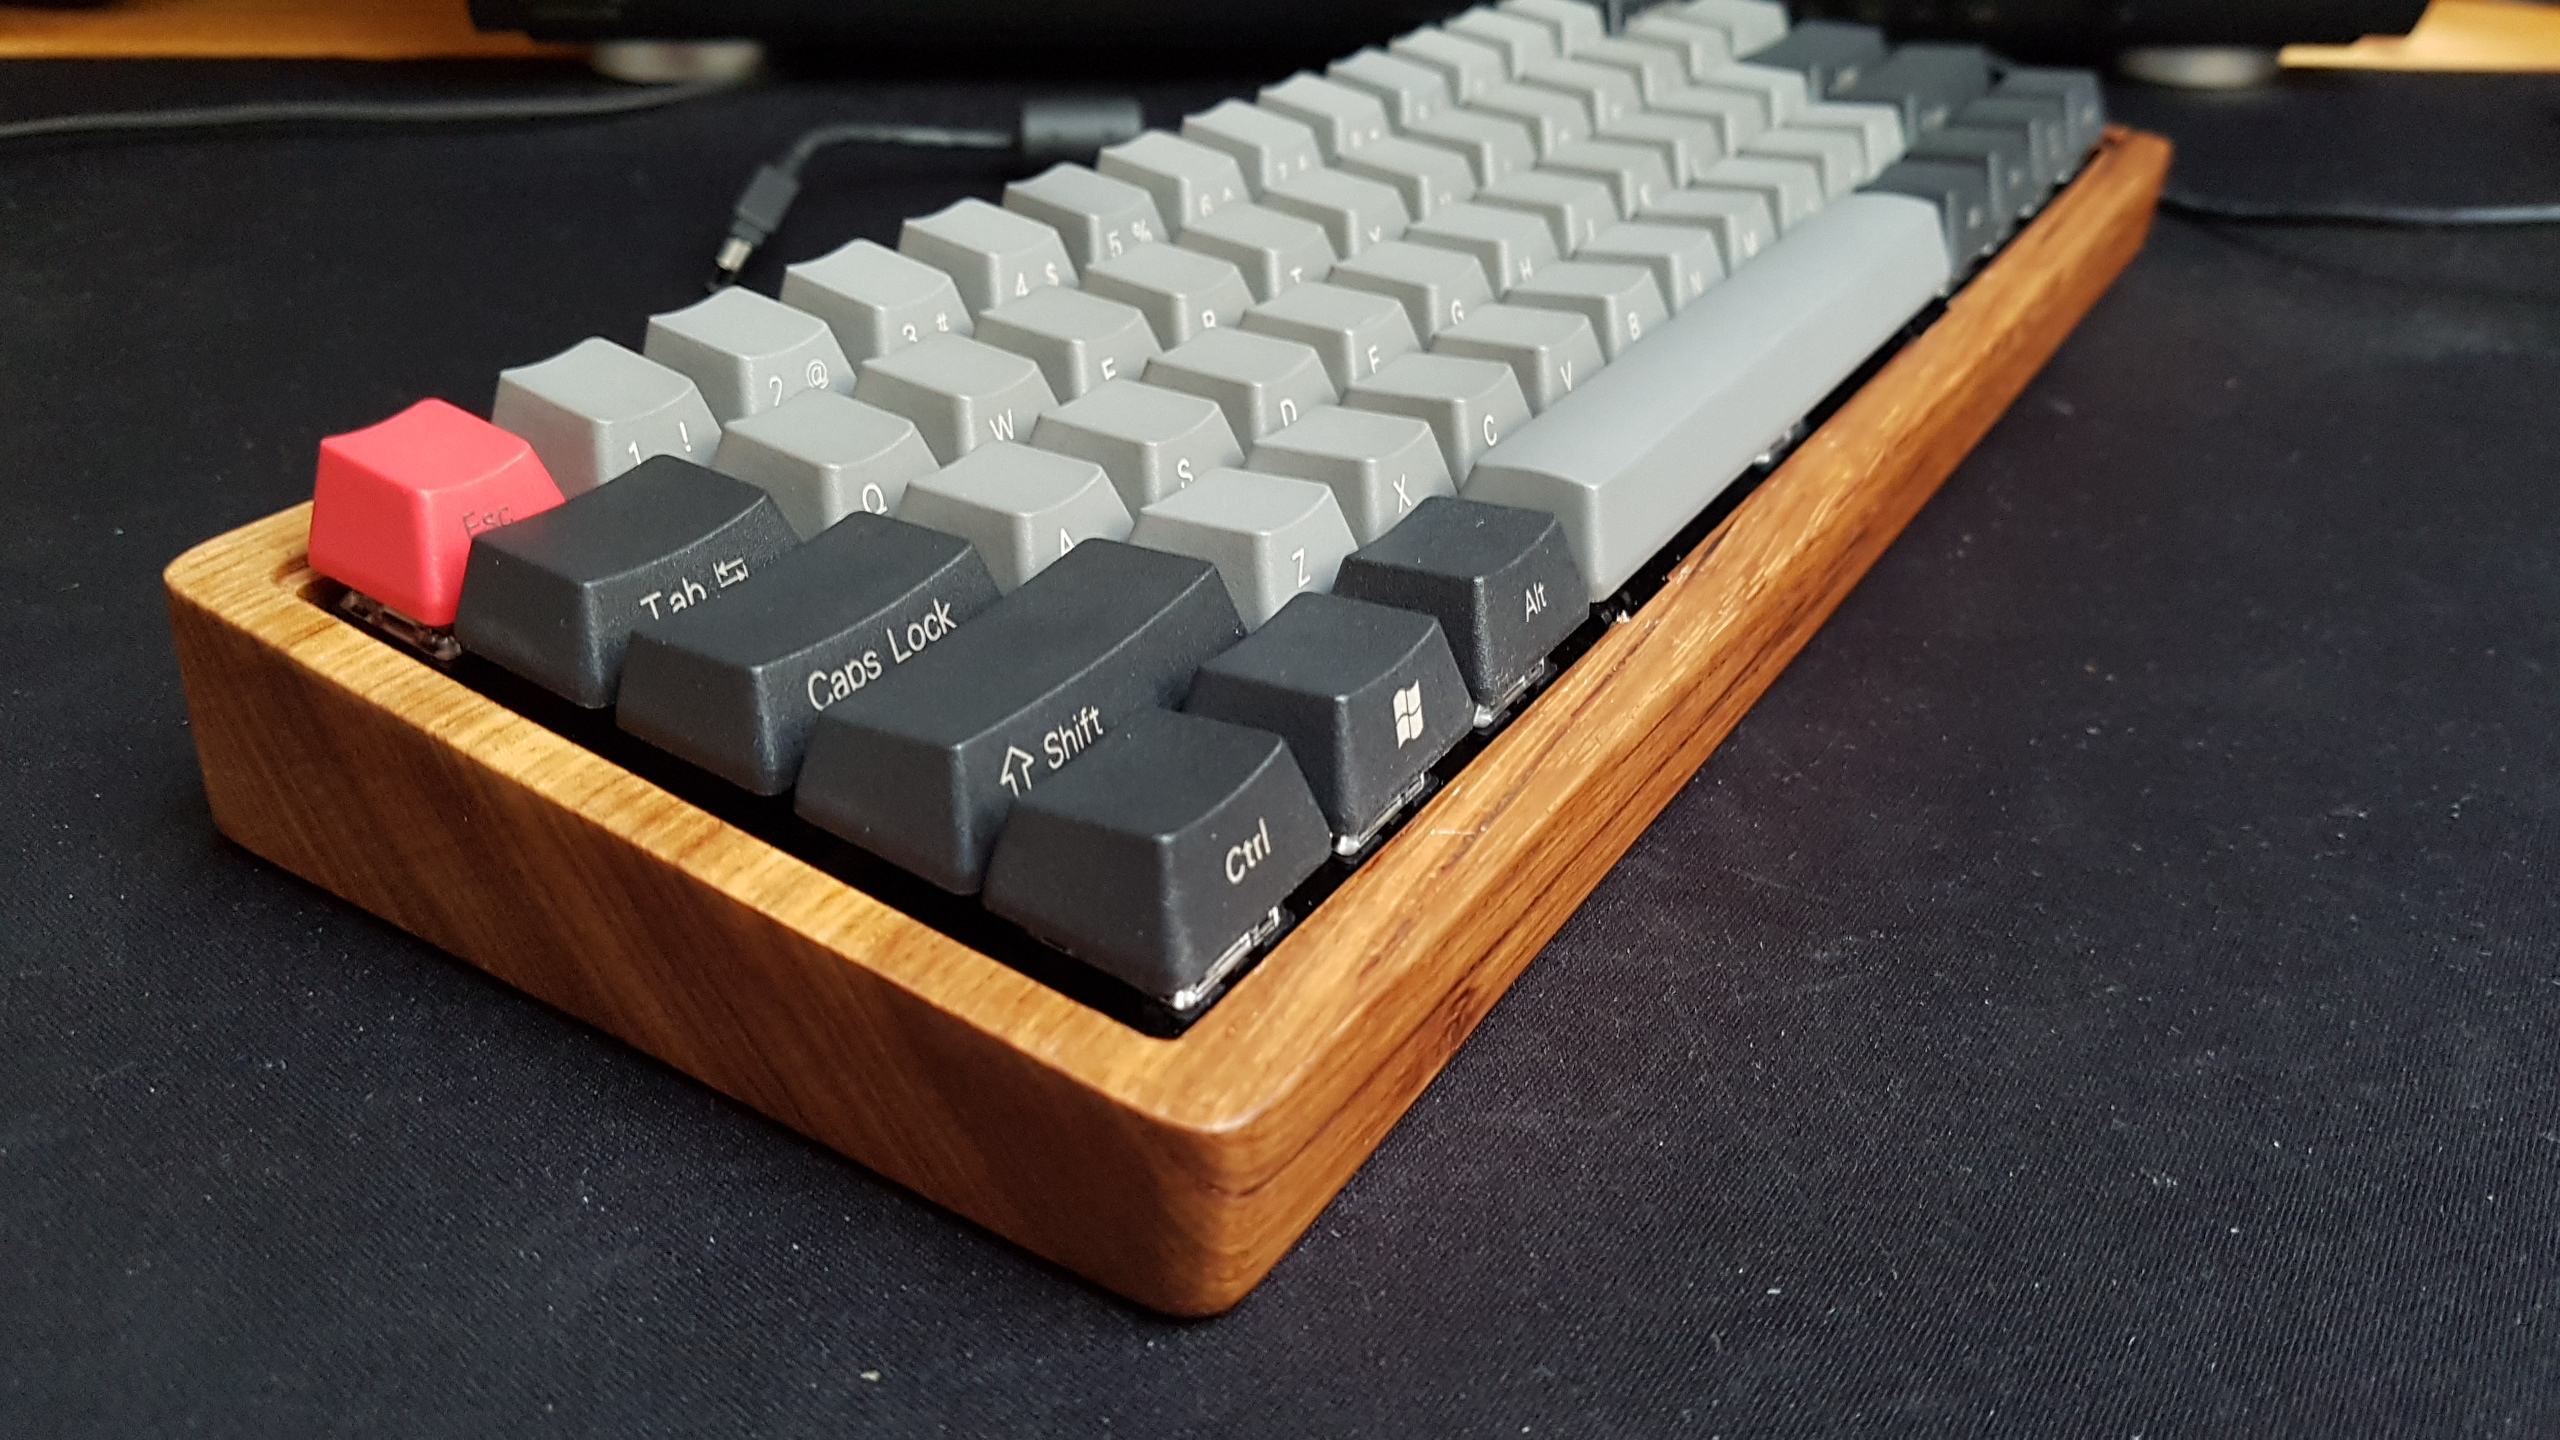 add7a7b518f Can You Build Your OWN Mechanical Keyboard?? - LTT Official - Linus ...